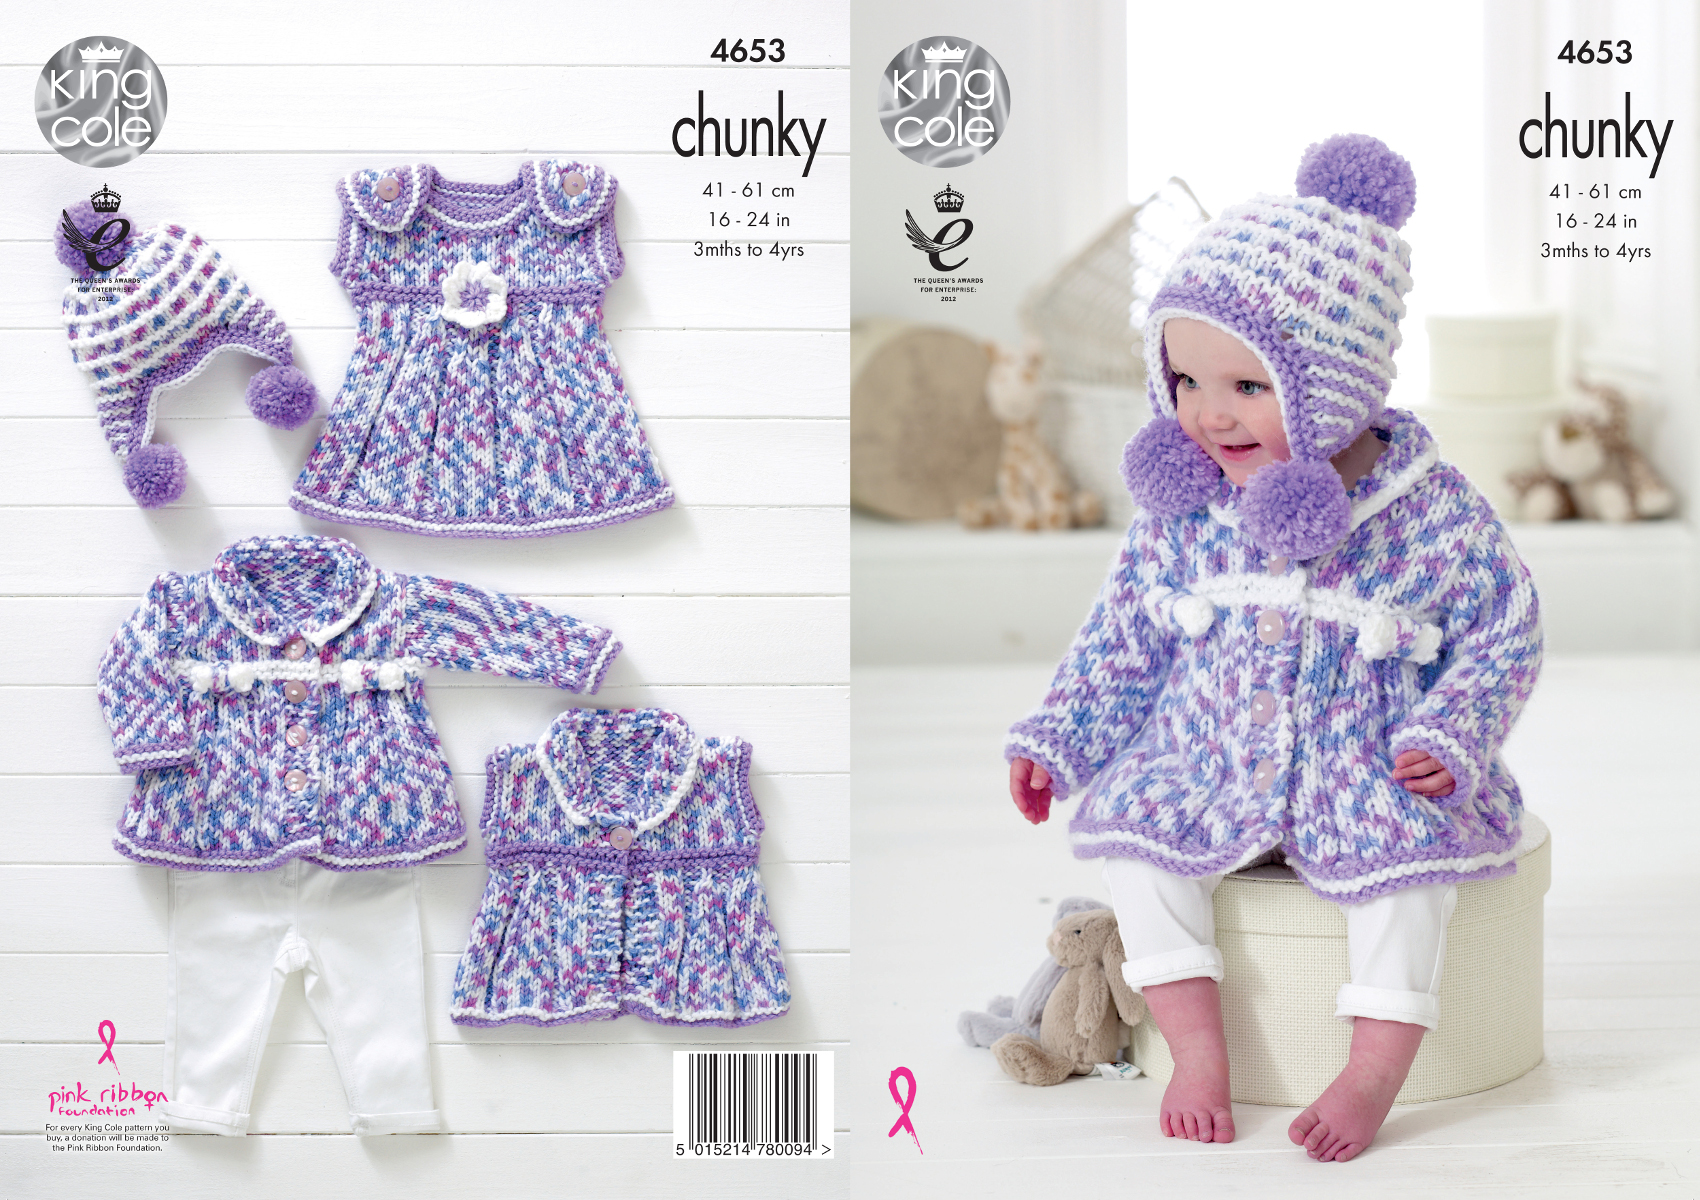 Baby Chunky Knitting Patterns : Chunky Knit Knitting Pattern King Cole Baby Coat Dress Waistcoat & Hat Se...